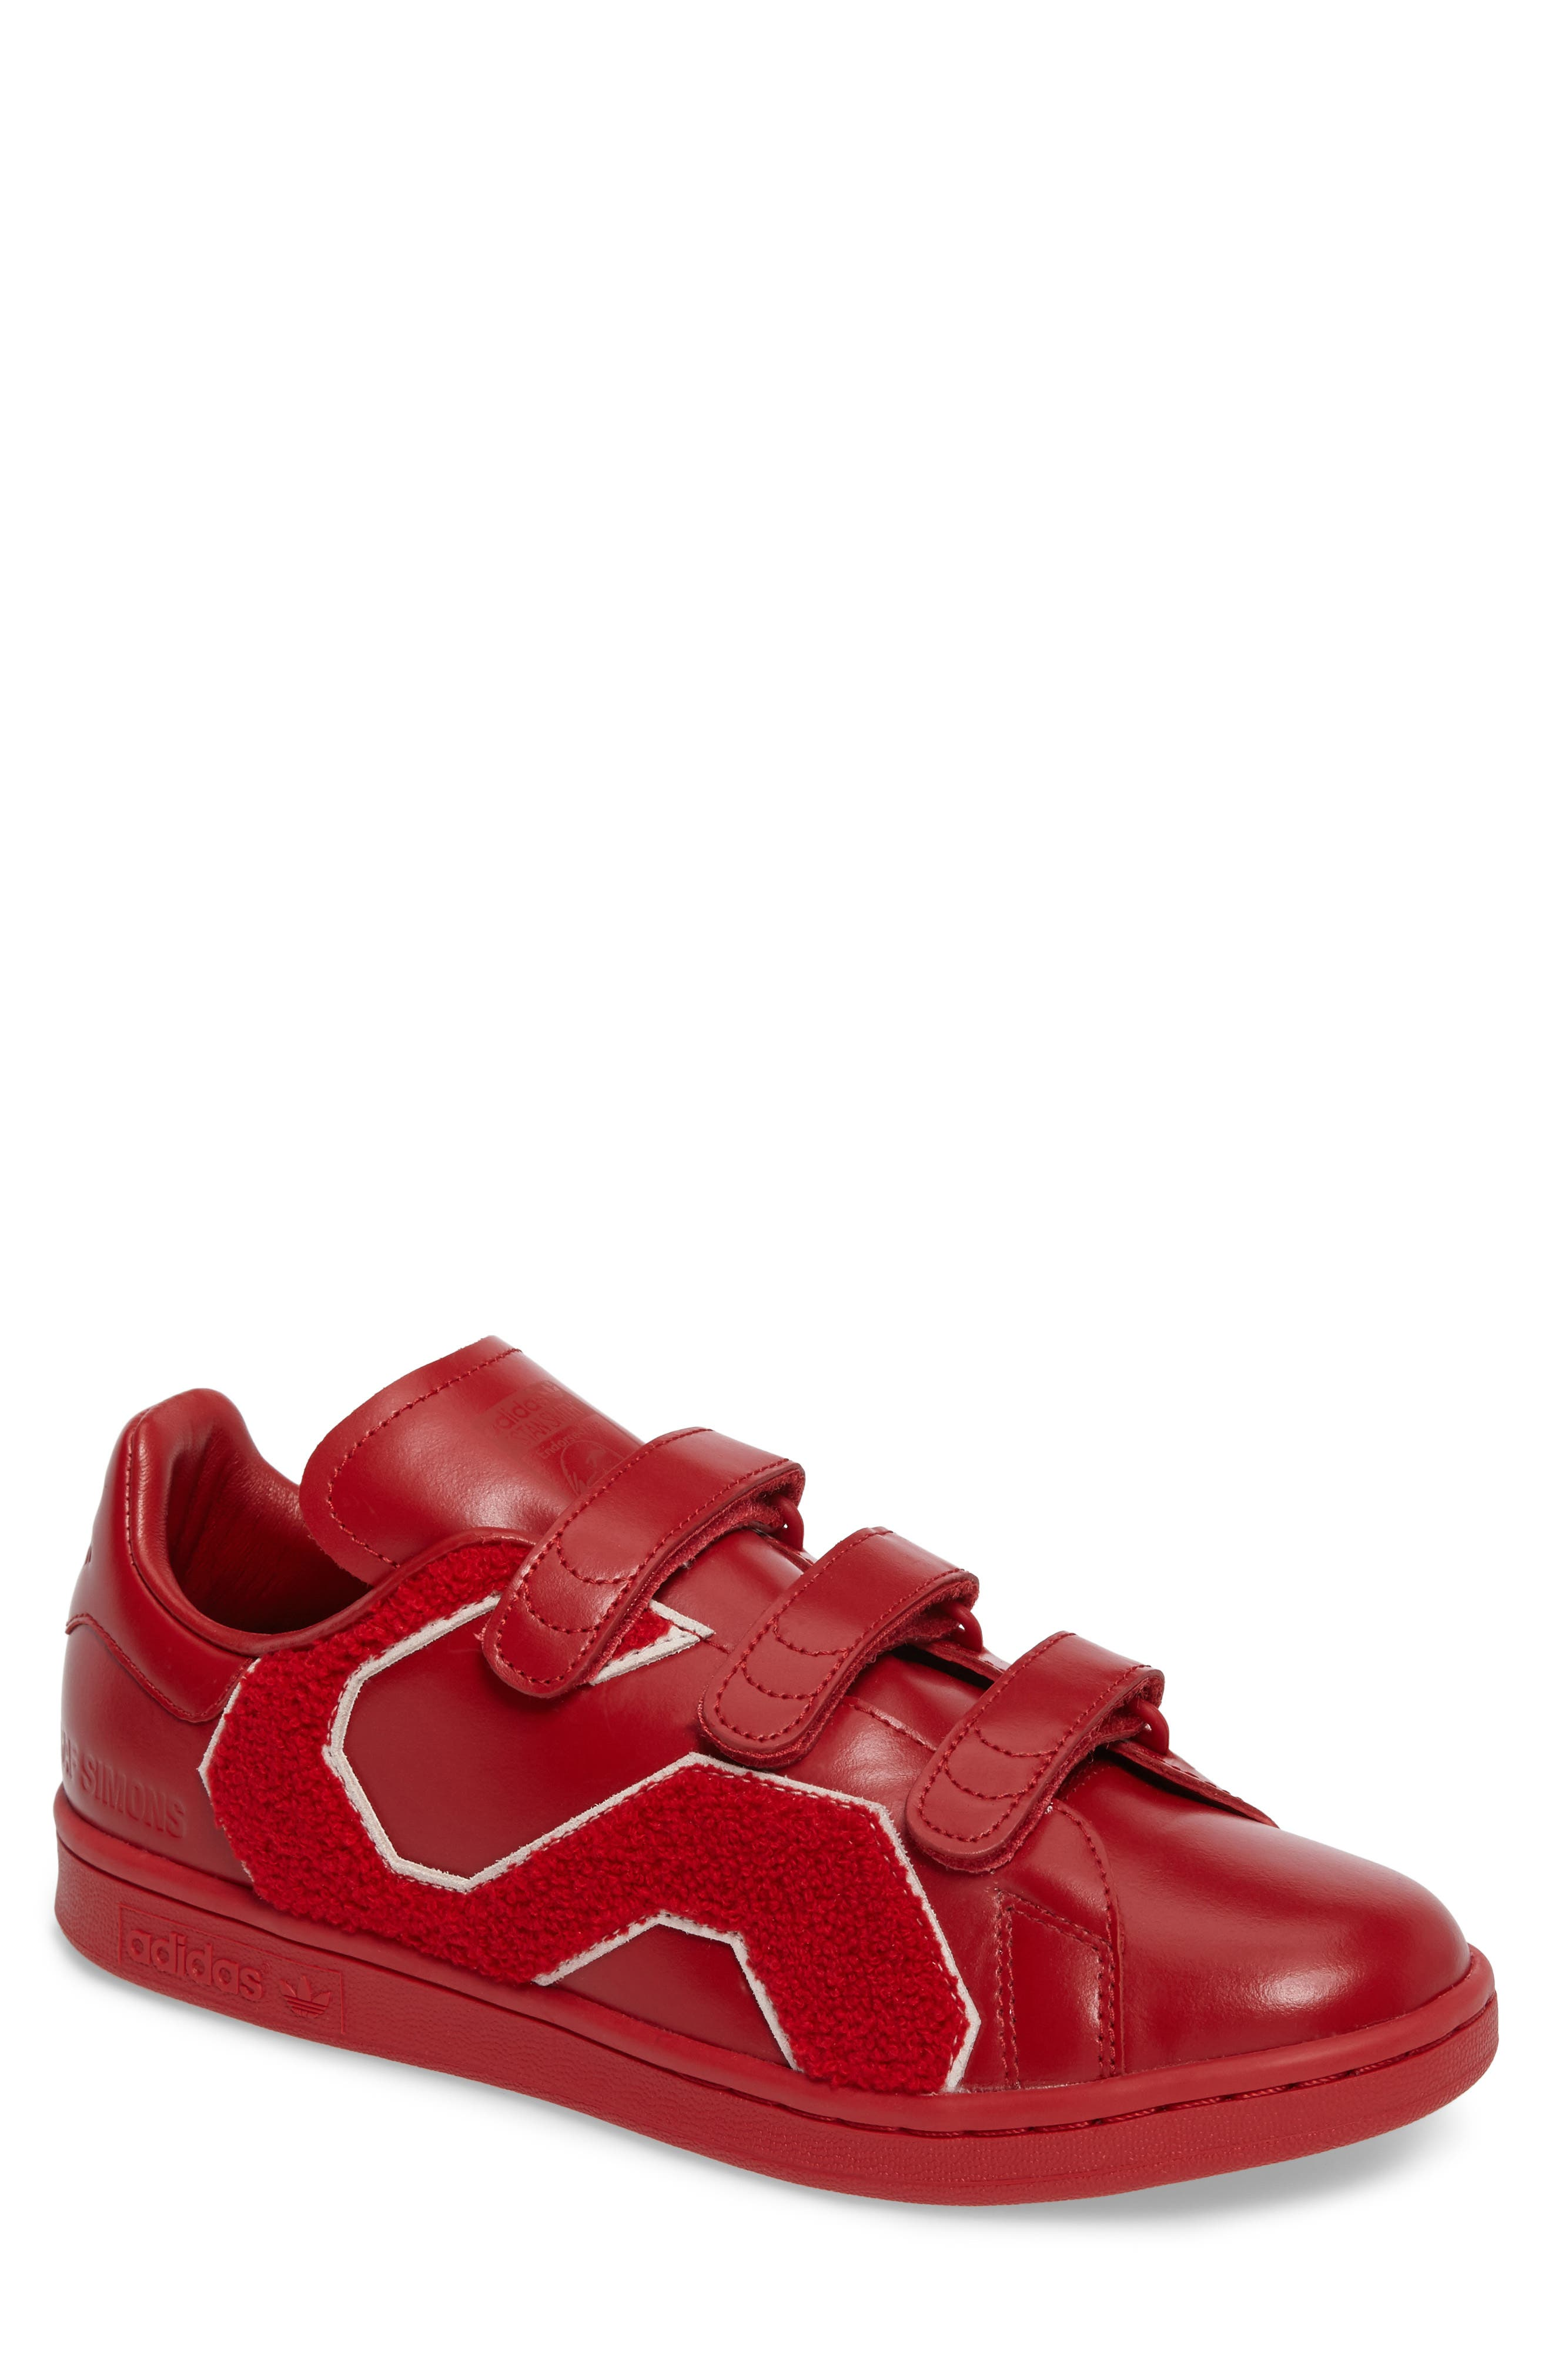 adidas by Raf Simons Stan Smith Sneaker,                         Main,                         color, 600